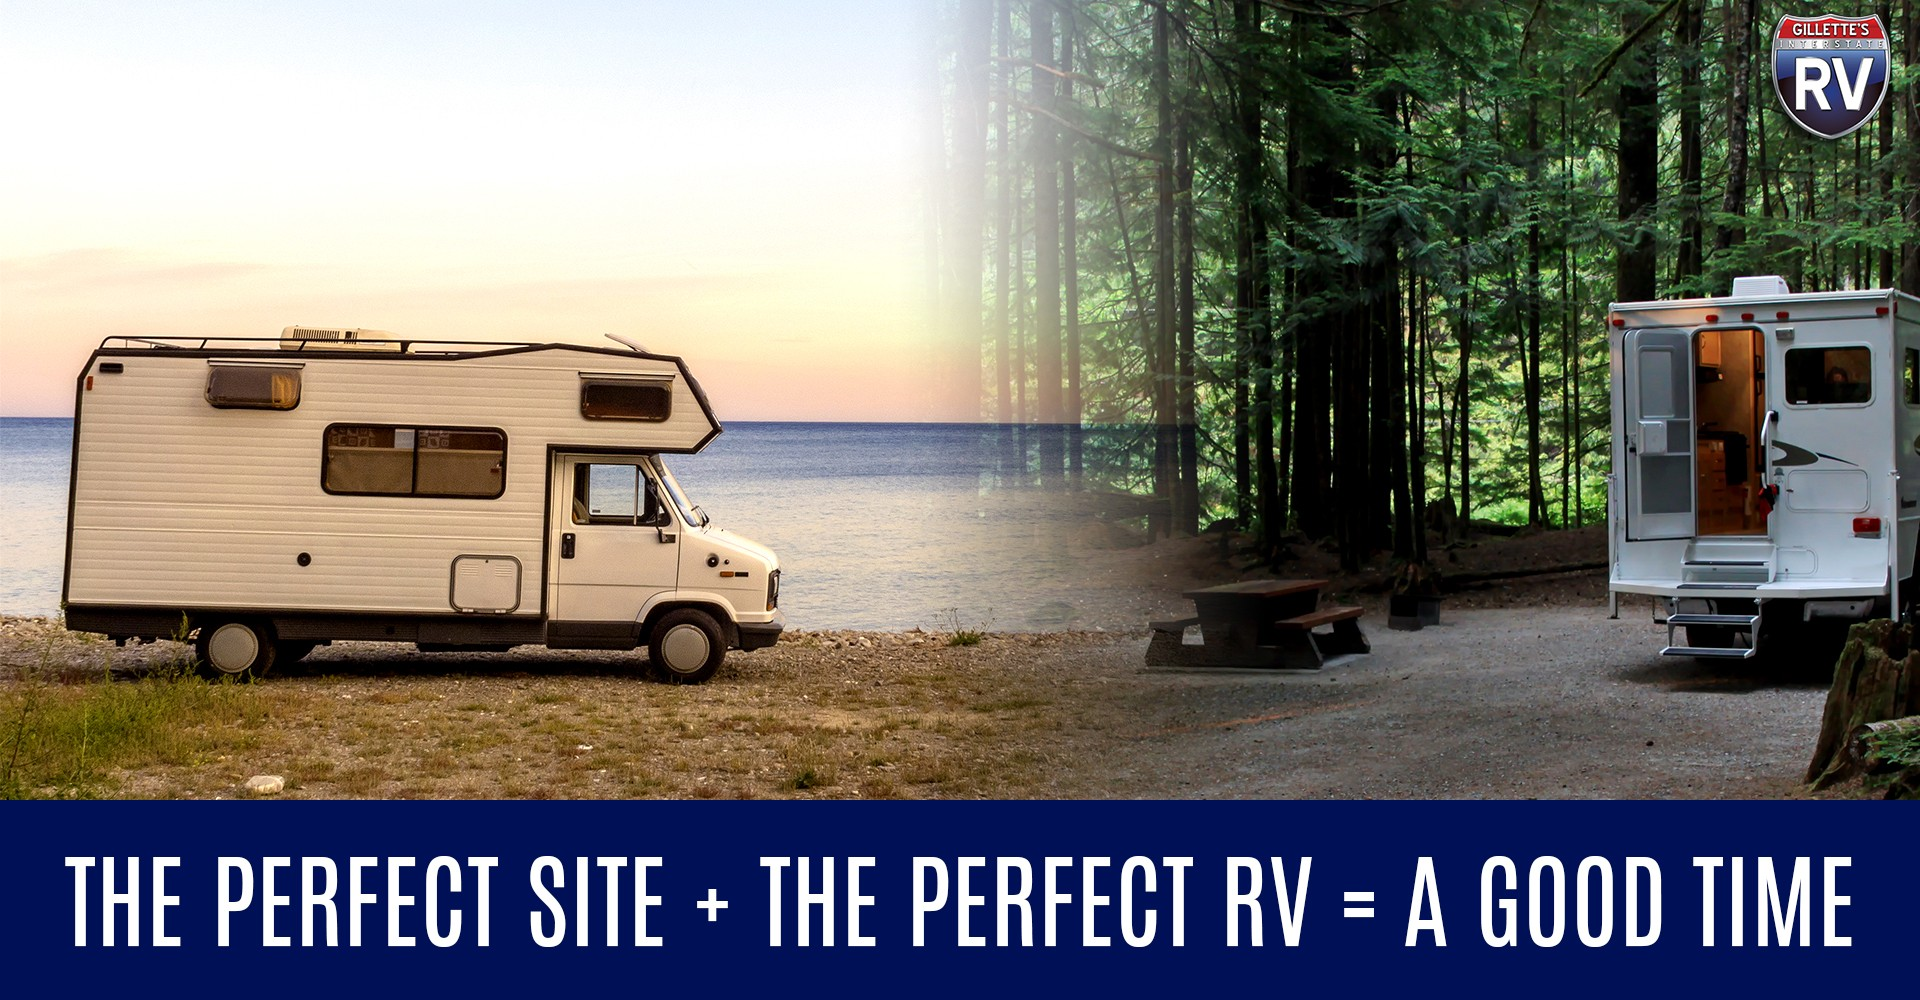 The perfect site plus the perfect RV equals a good time!